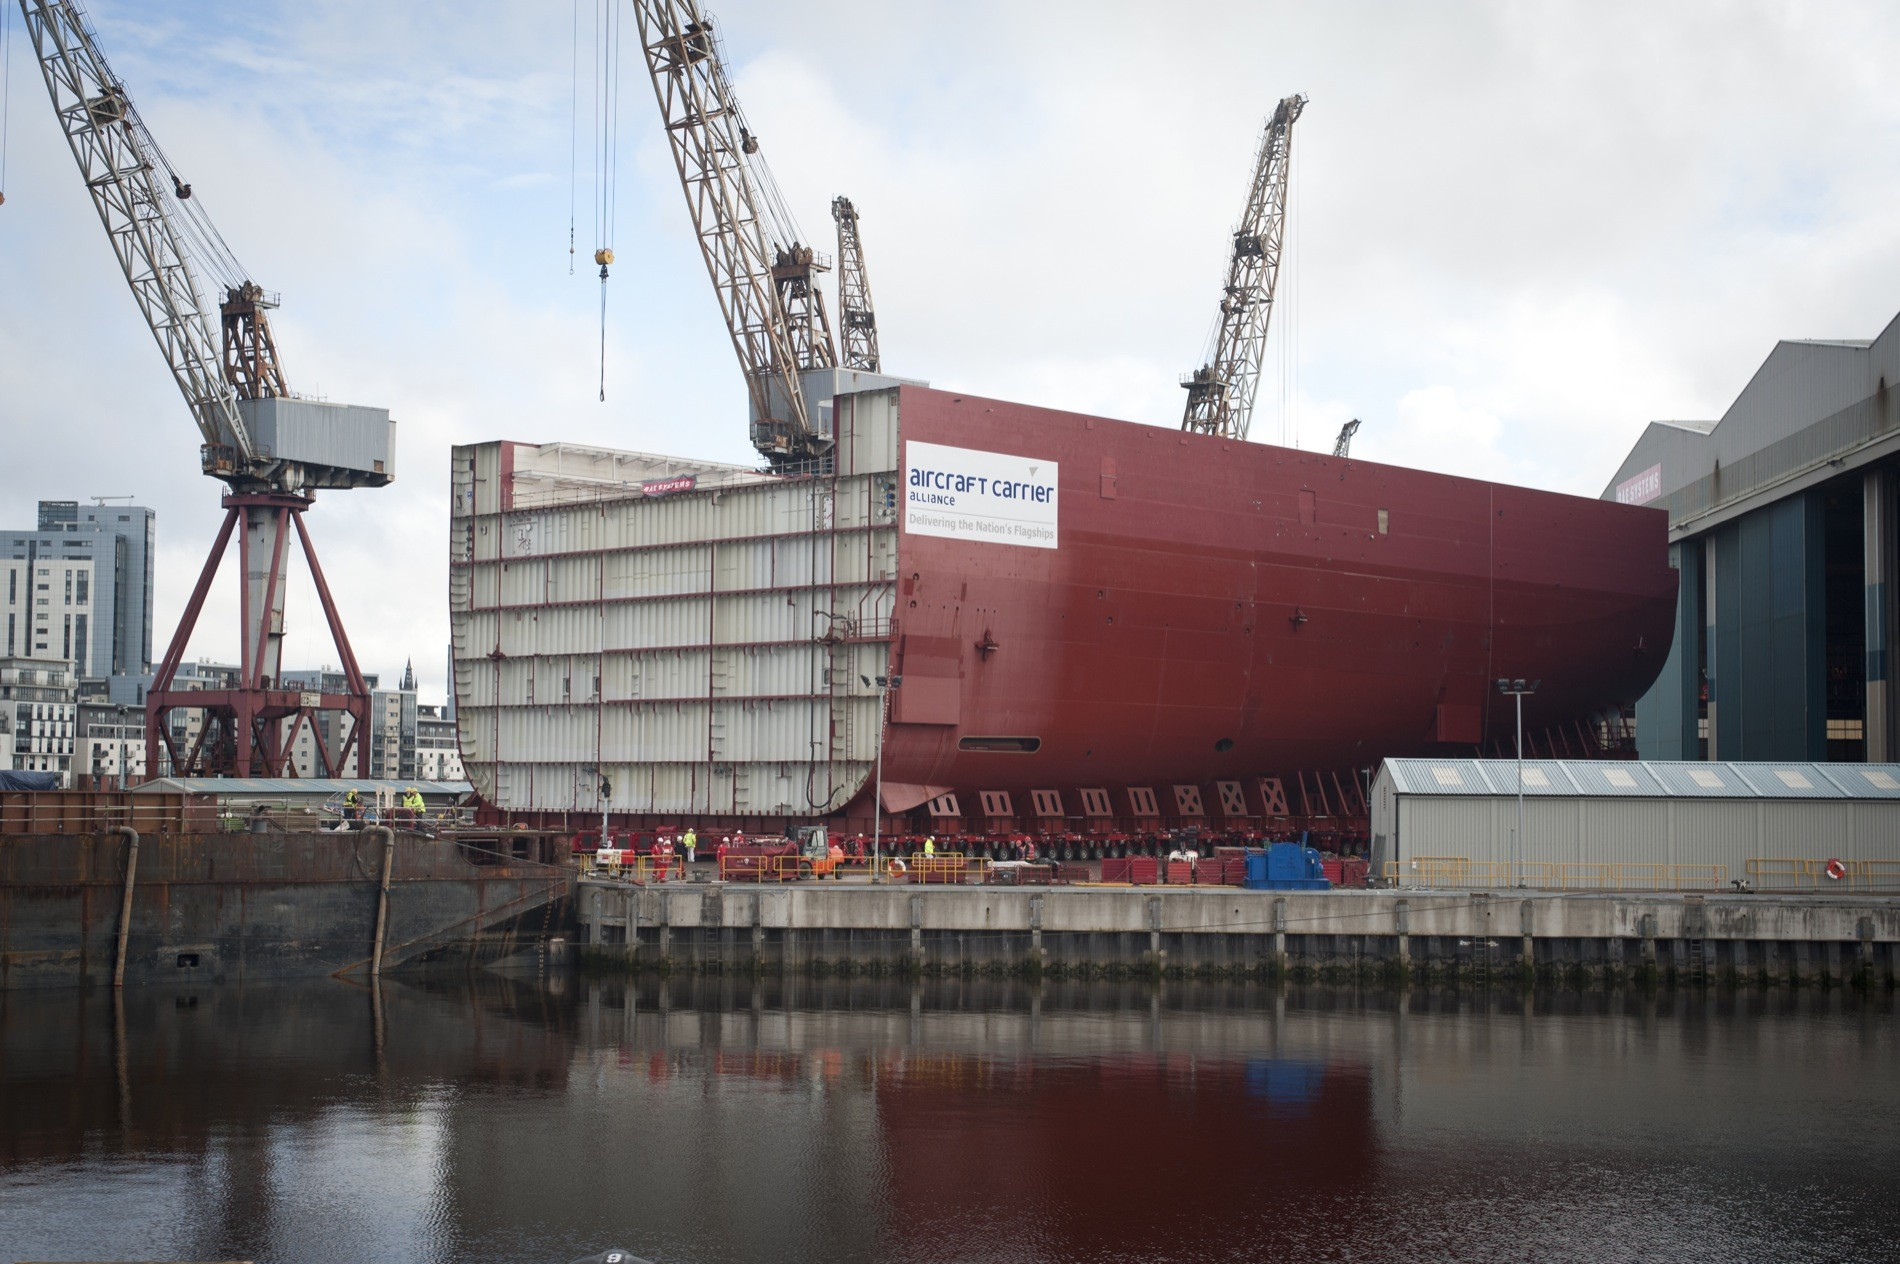 Nation's flagship is on the move - Lower Block 04, the biggest hull section of HMS Queen Elizabeth at 11,300 tonnes, is rolled out of the shipbuild halls at BAE Systems' Govan yard on the Clyde ahead of her journey to Rosyth. Photo (c) BAE System's